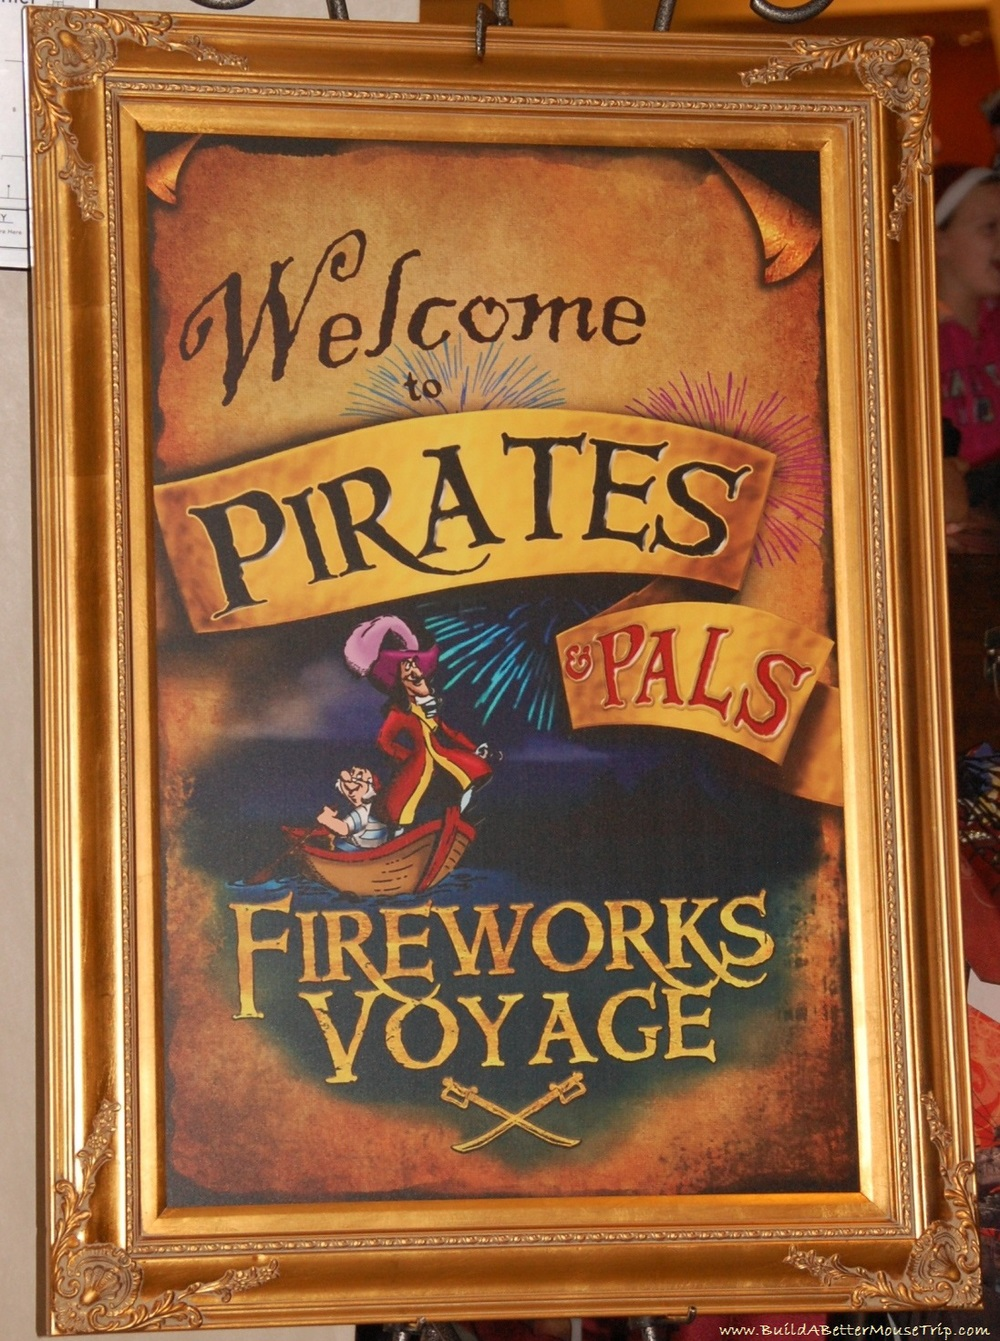 Pirate & Pals Fireworks Voyage at Disney's Contemporary Resort '